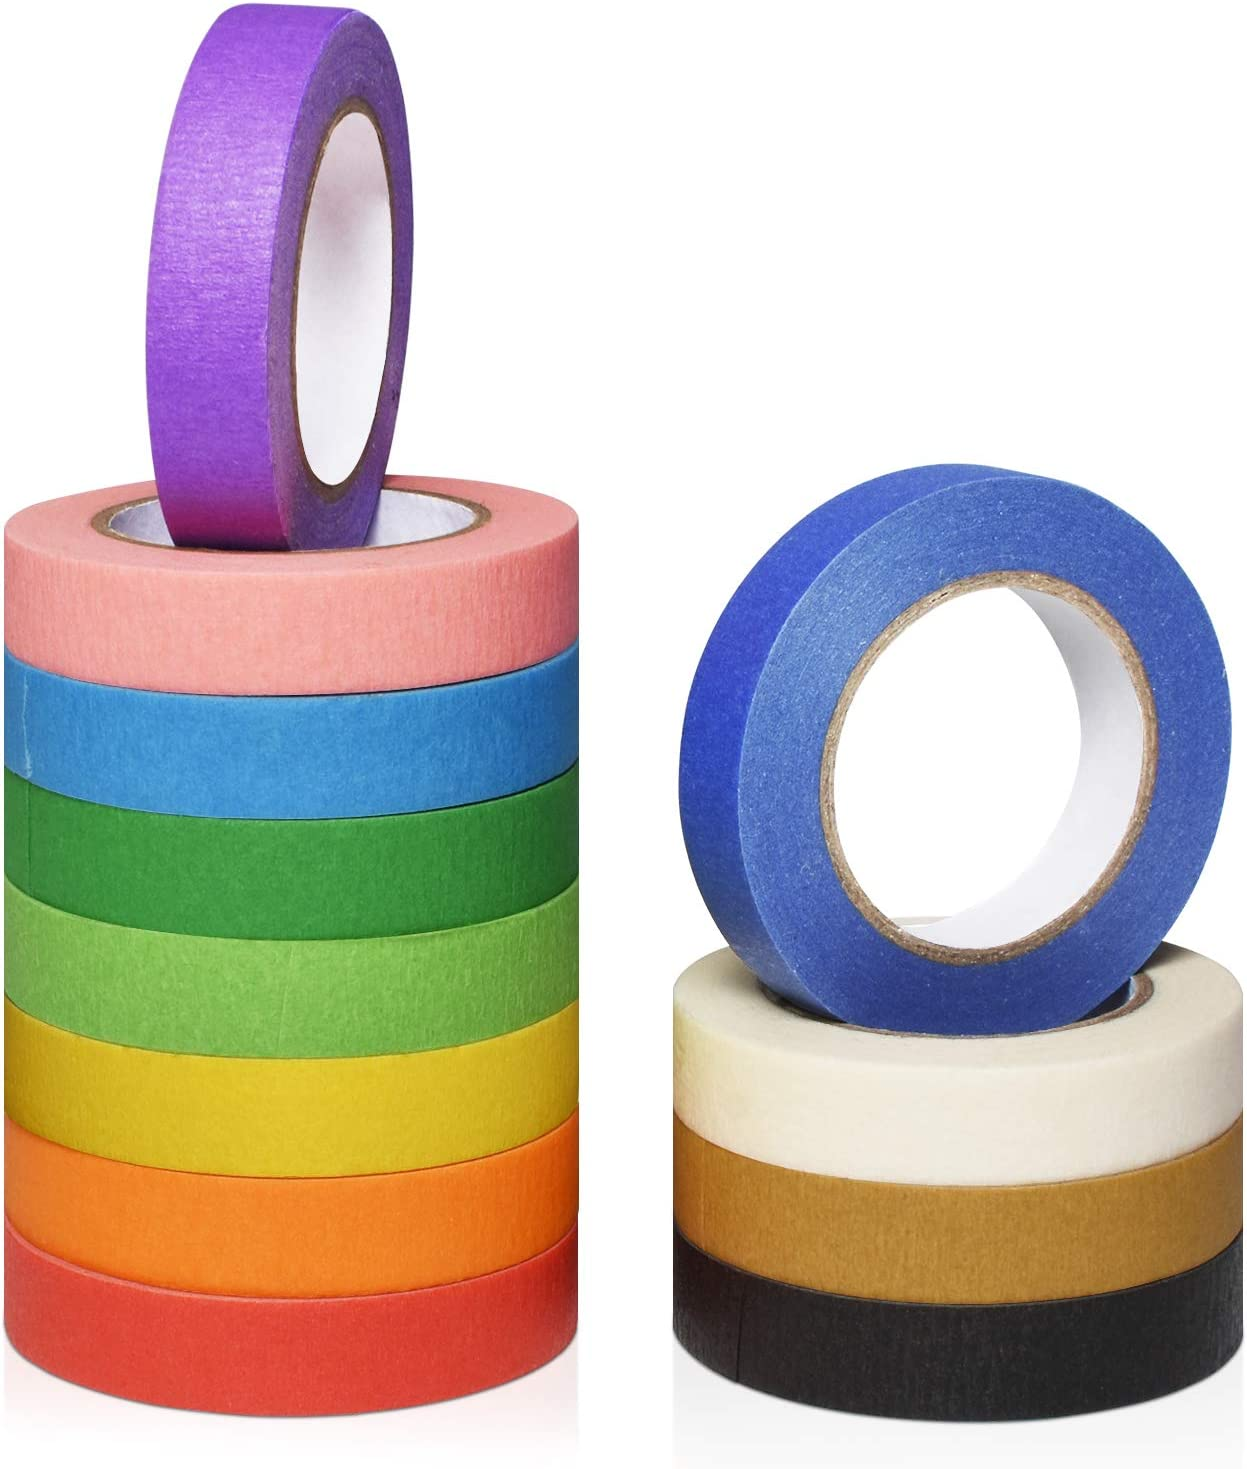 Cualfec Max 51% mart OFF 12 Rolls Masking Tape 1 inch Painters Tapes 2 Wide Color